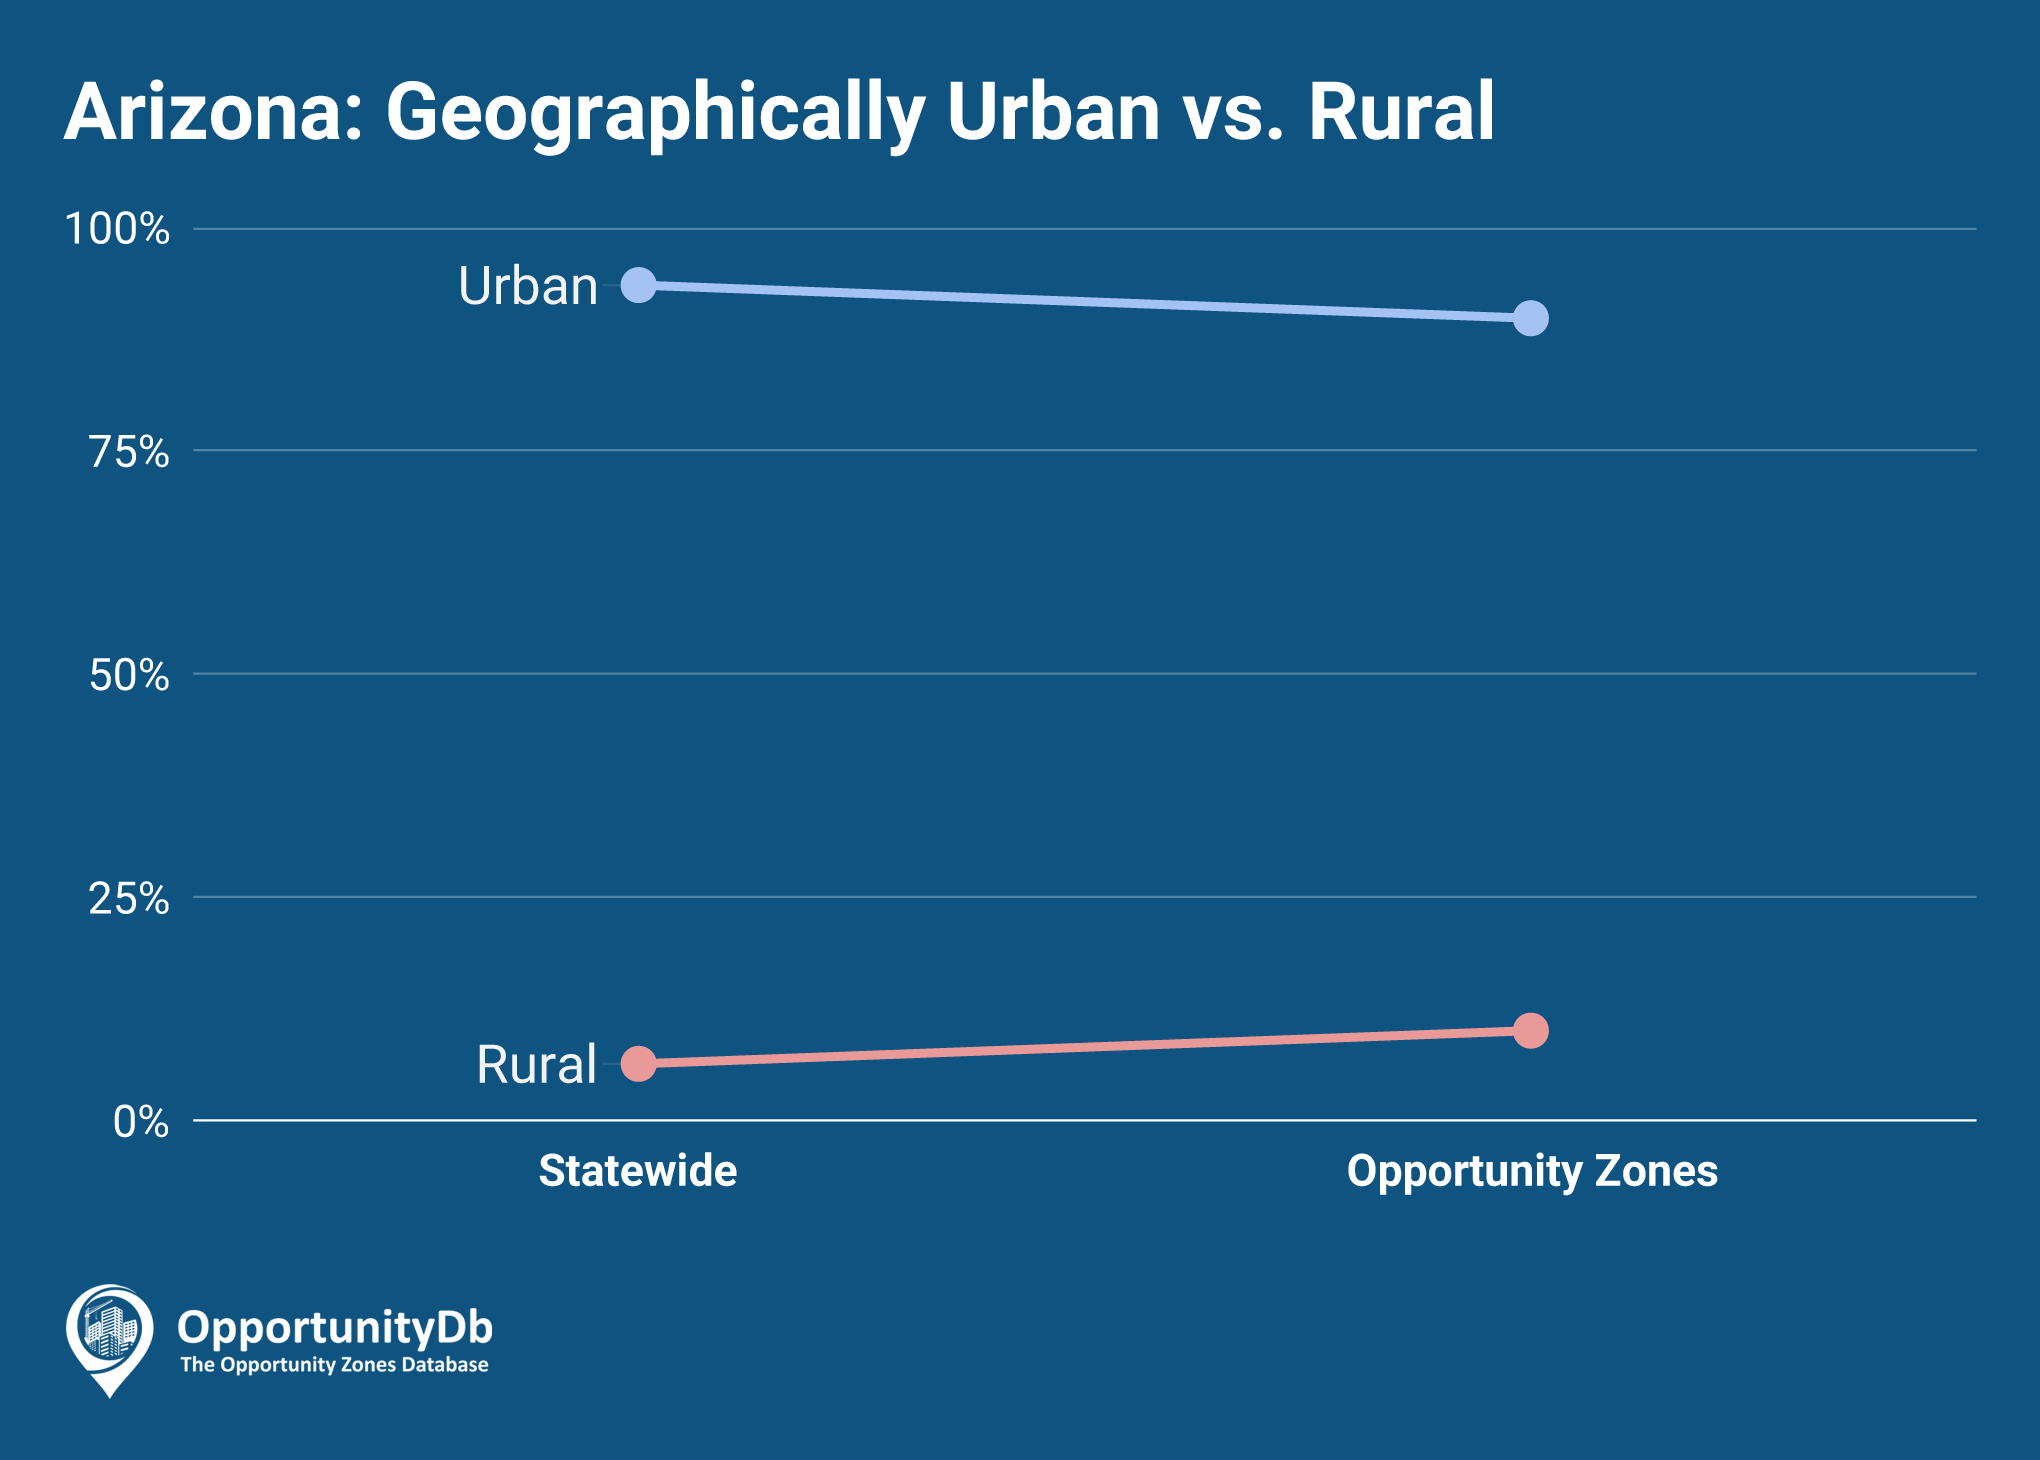 Urban vs. Rural in Arizona Opportunity Zones